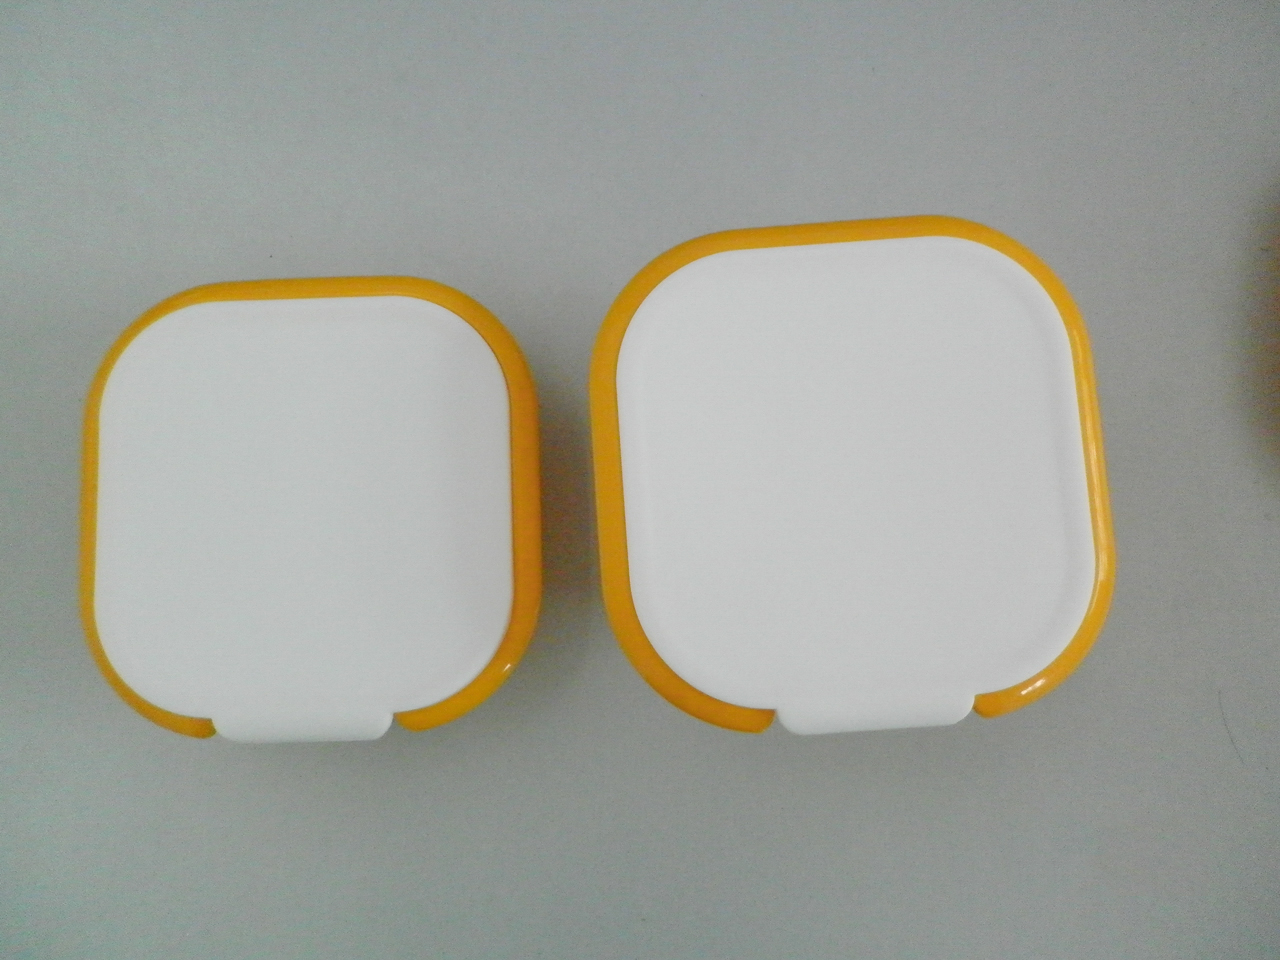 http://www.refinehksilicone.cn/data/images/product/20180418101327_245.jpg